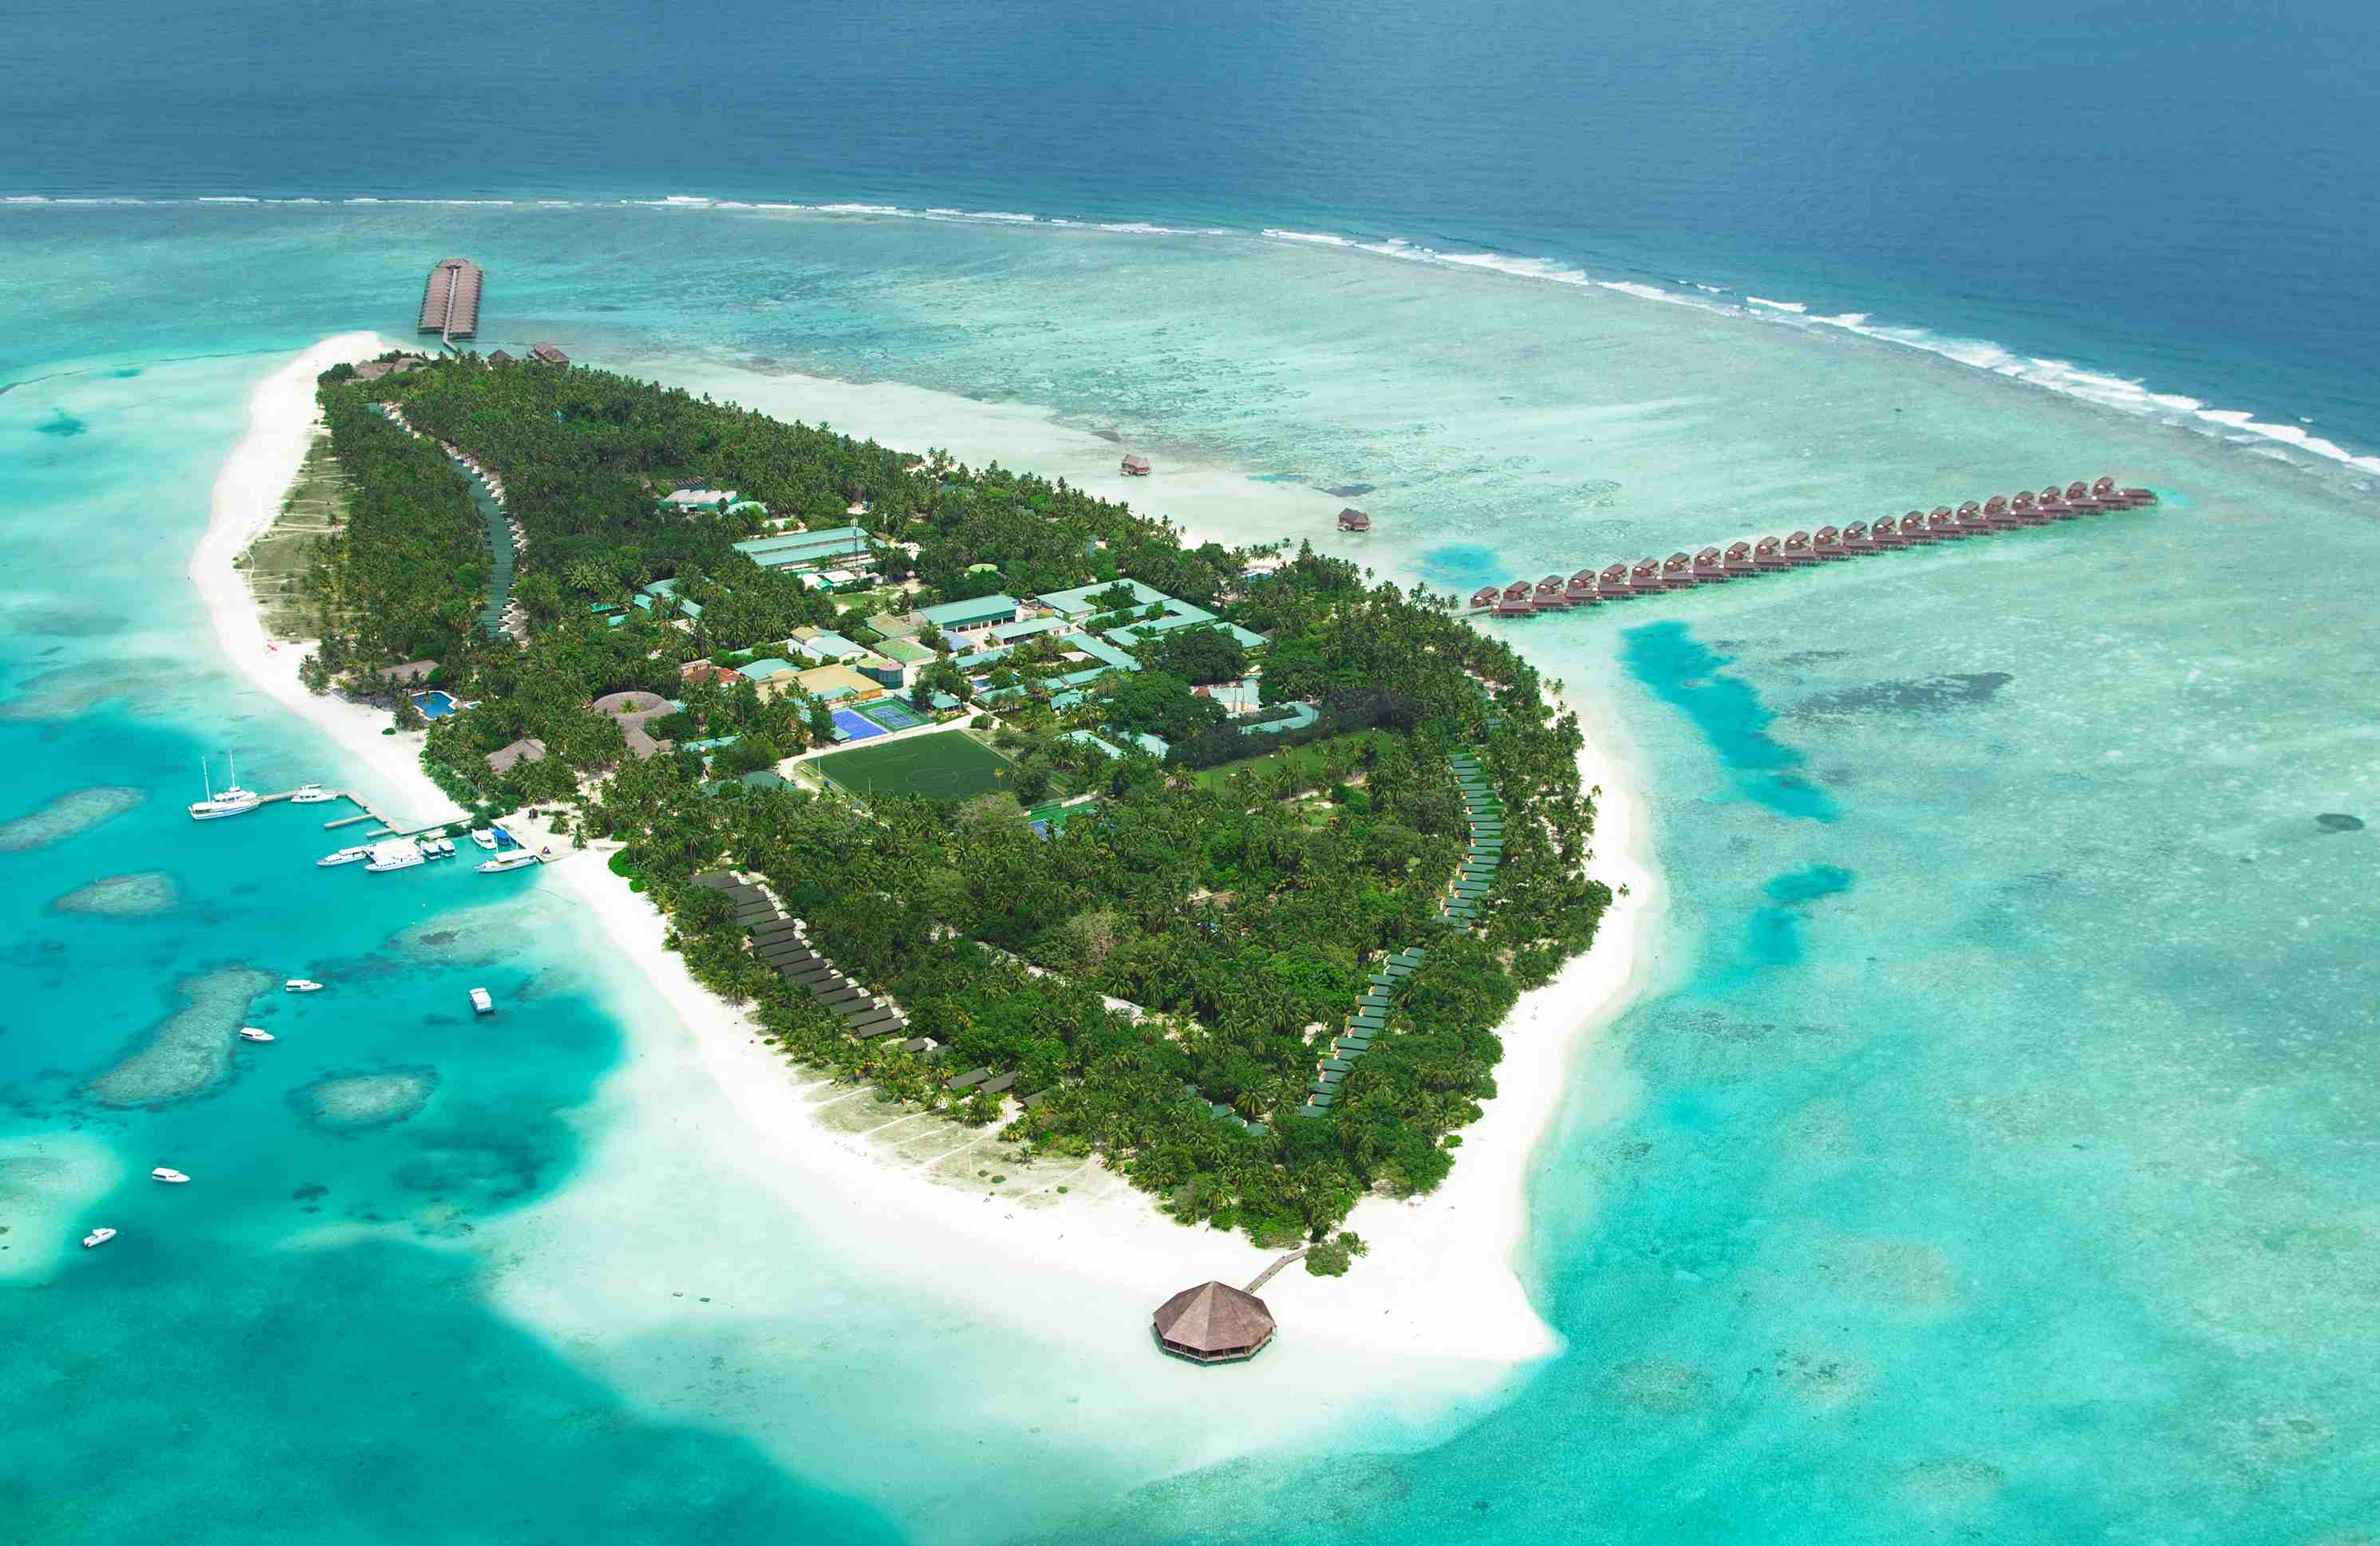 Review Meeru Island Resort & Spa, Maldives